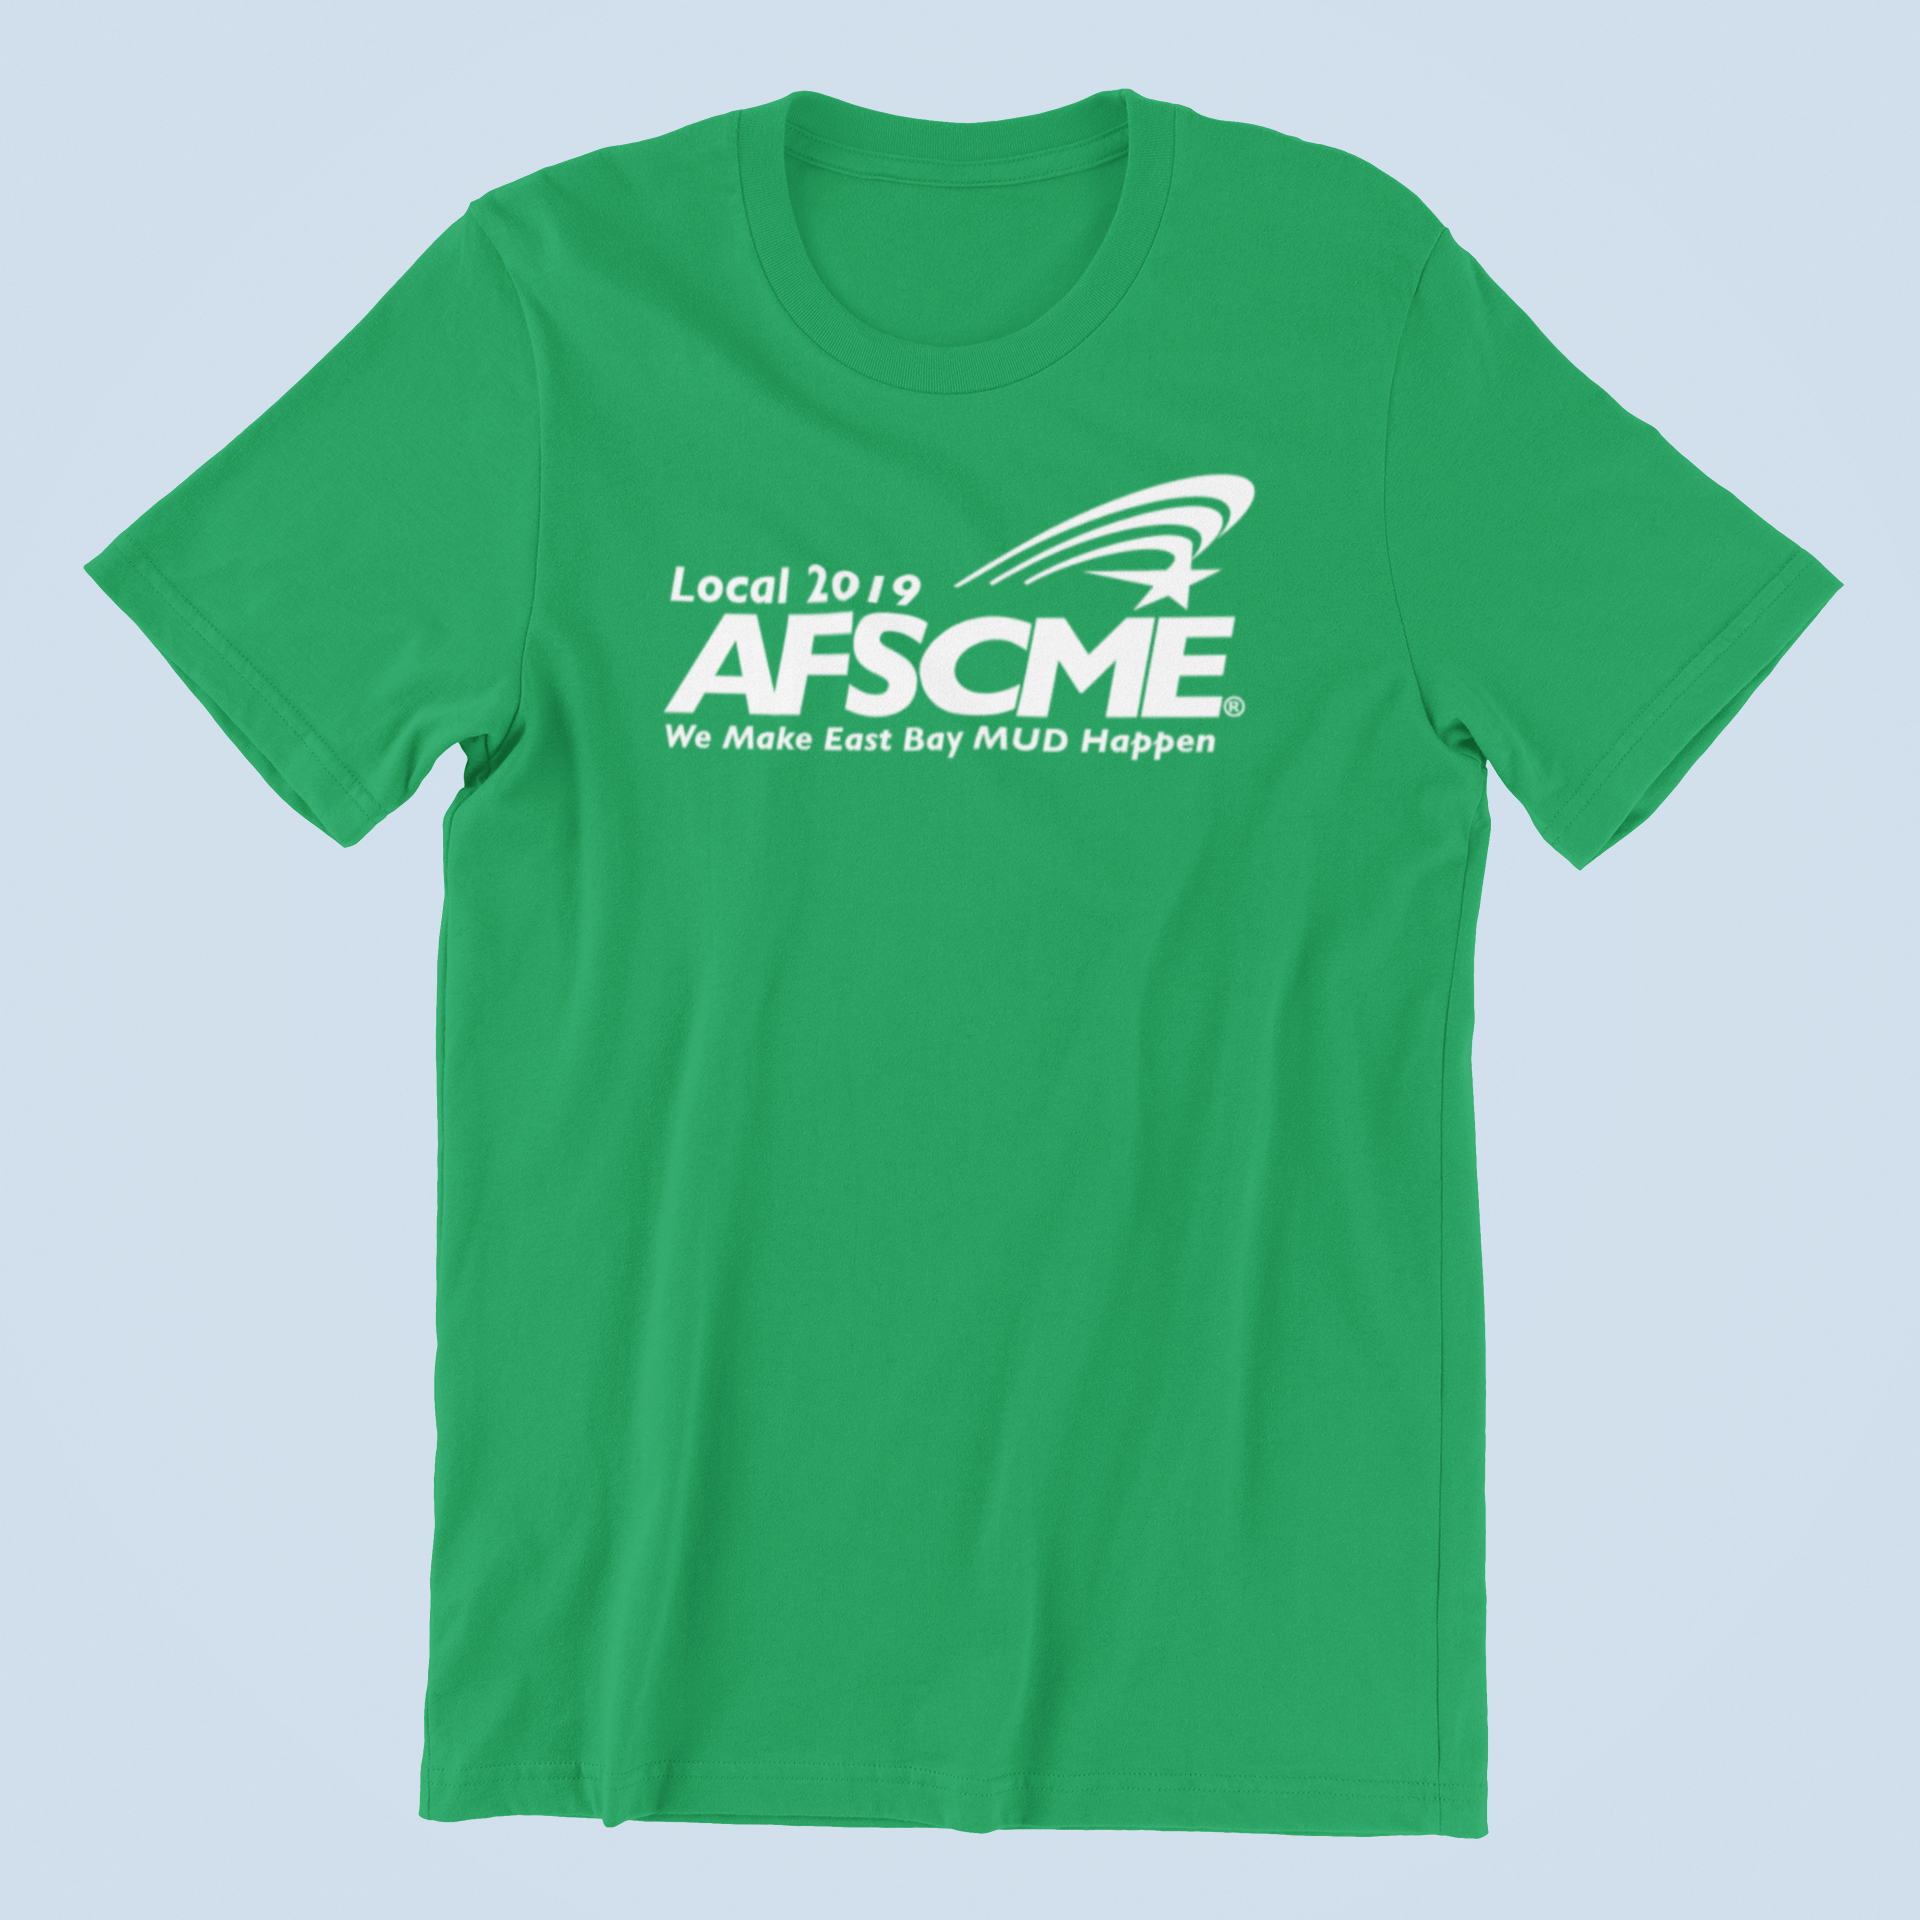 Mockup of AFSCME Local 2019 T-shirt